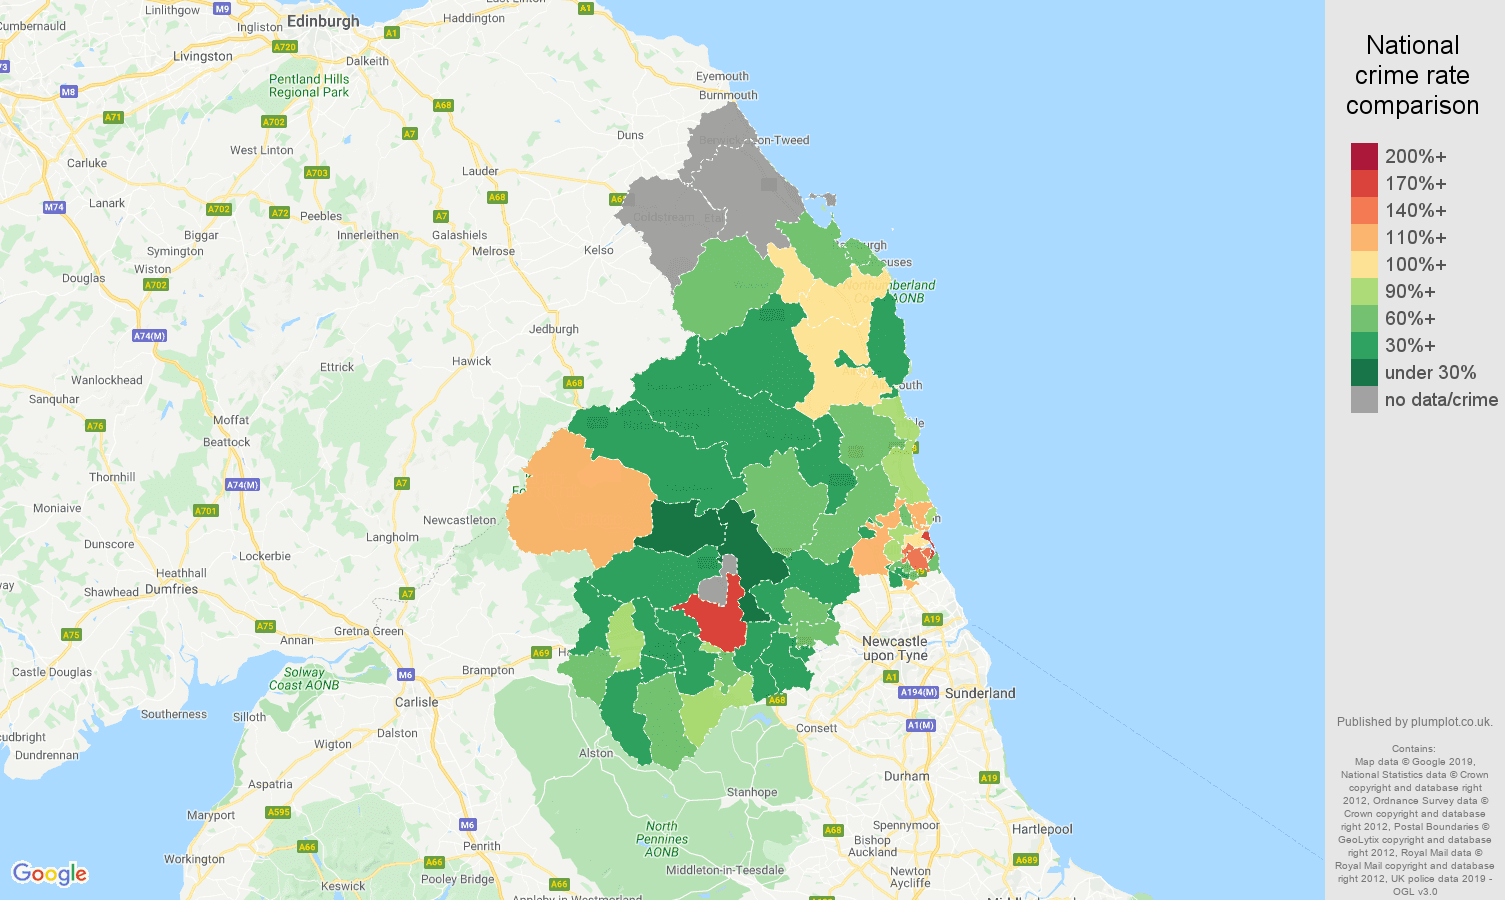 Northumberland other theft crime rate comparison map